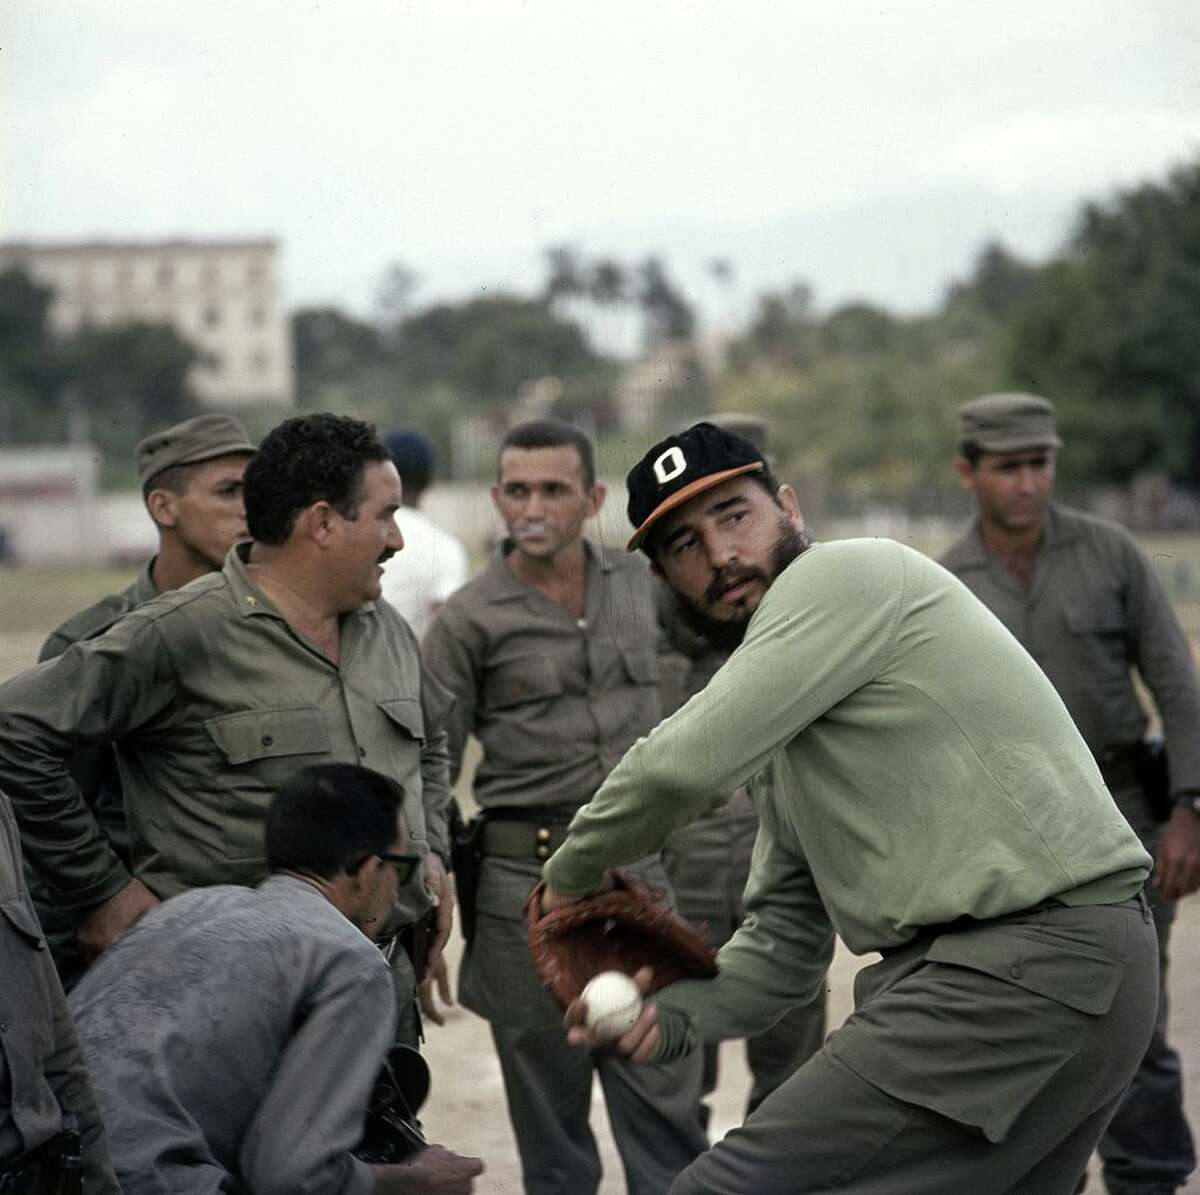 Fidel Castro, a noted baseball fan and person who is not alive, was shown in the montage as well.